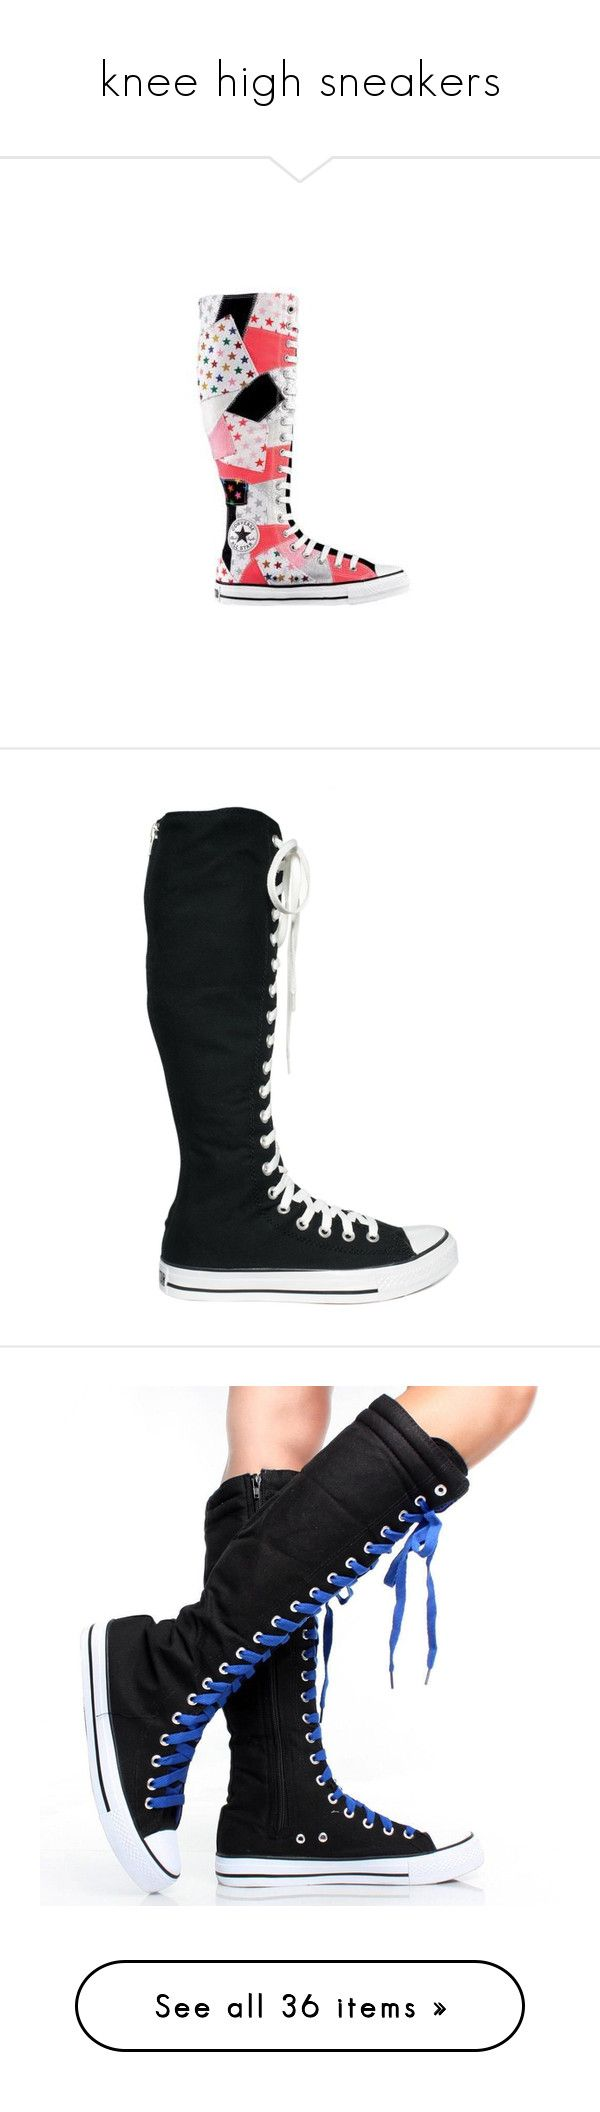 """""""knee high sneakers"""" by wolfpanda ❤ liked on Polyvore featuring shoes, sneakers, converse, boots, converse shoes, converse sneakers, converse trainers, converse footwear, lacy shoes and lace shoes"""